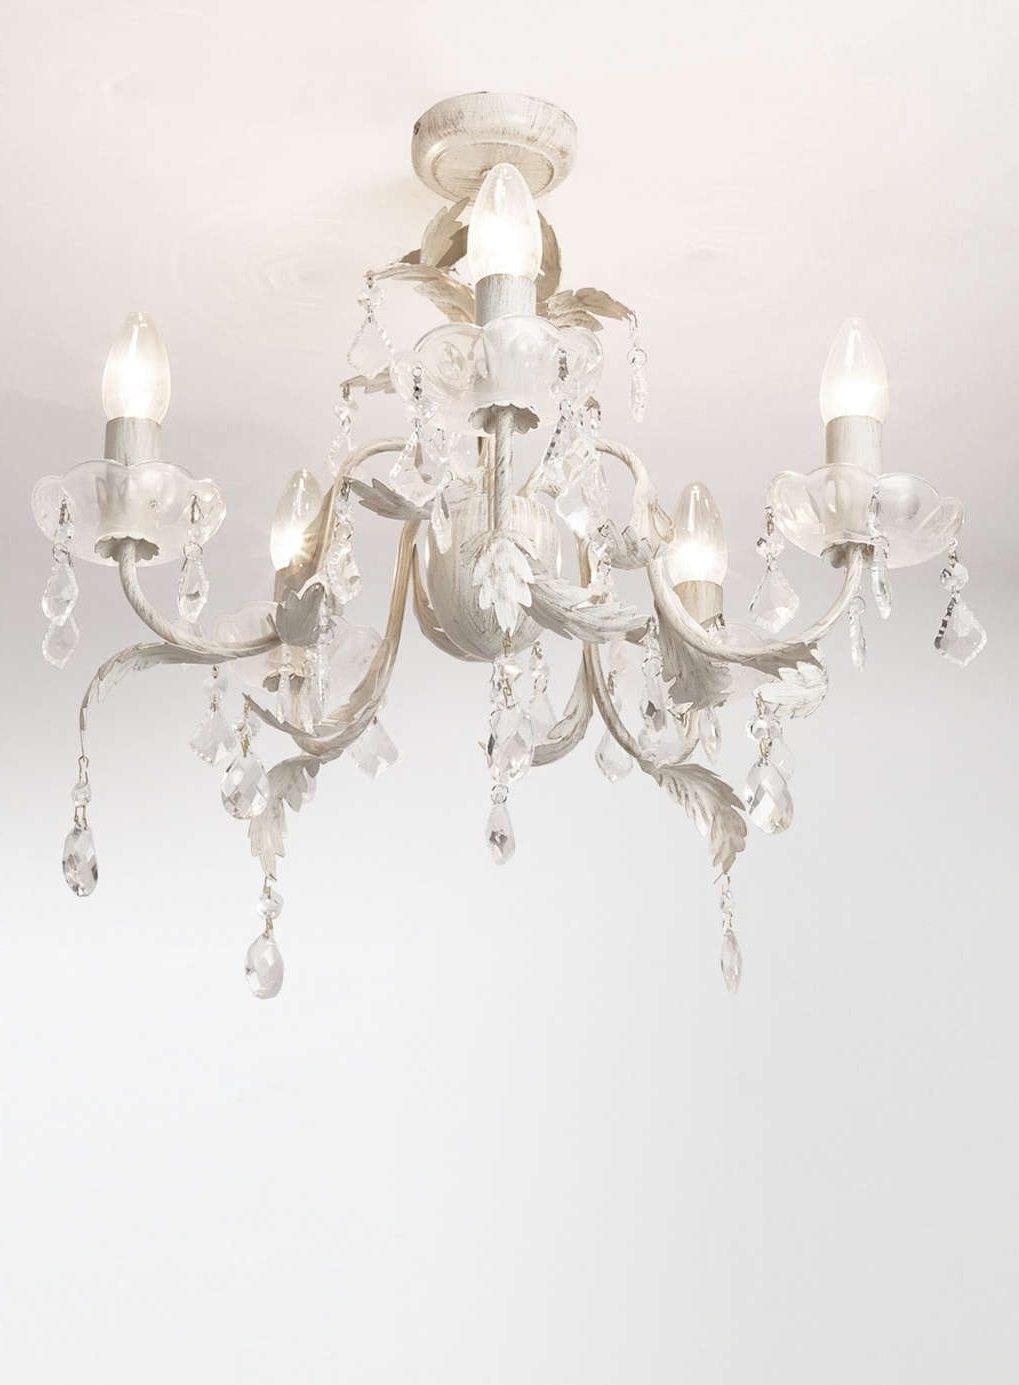 Flush Fitting Chandeliers Throughout Most Current Juliette 5 Light Flush Fitting Chandelier – Flush Fitting – Ceiling (View 8 of 20)